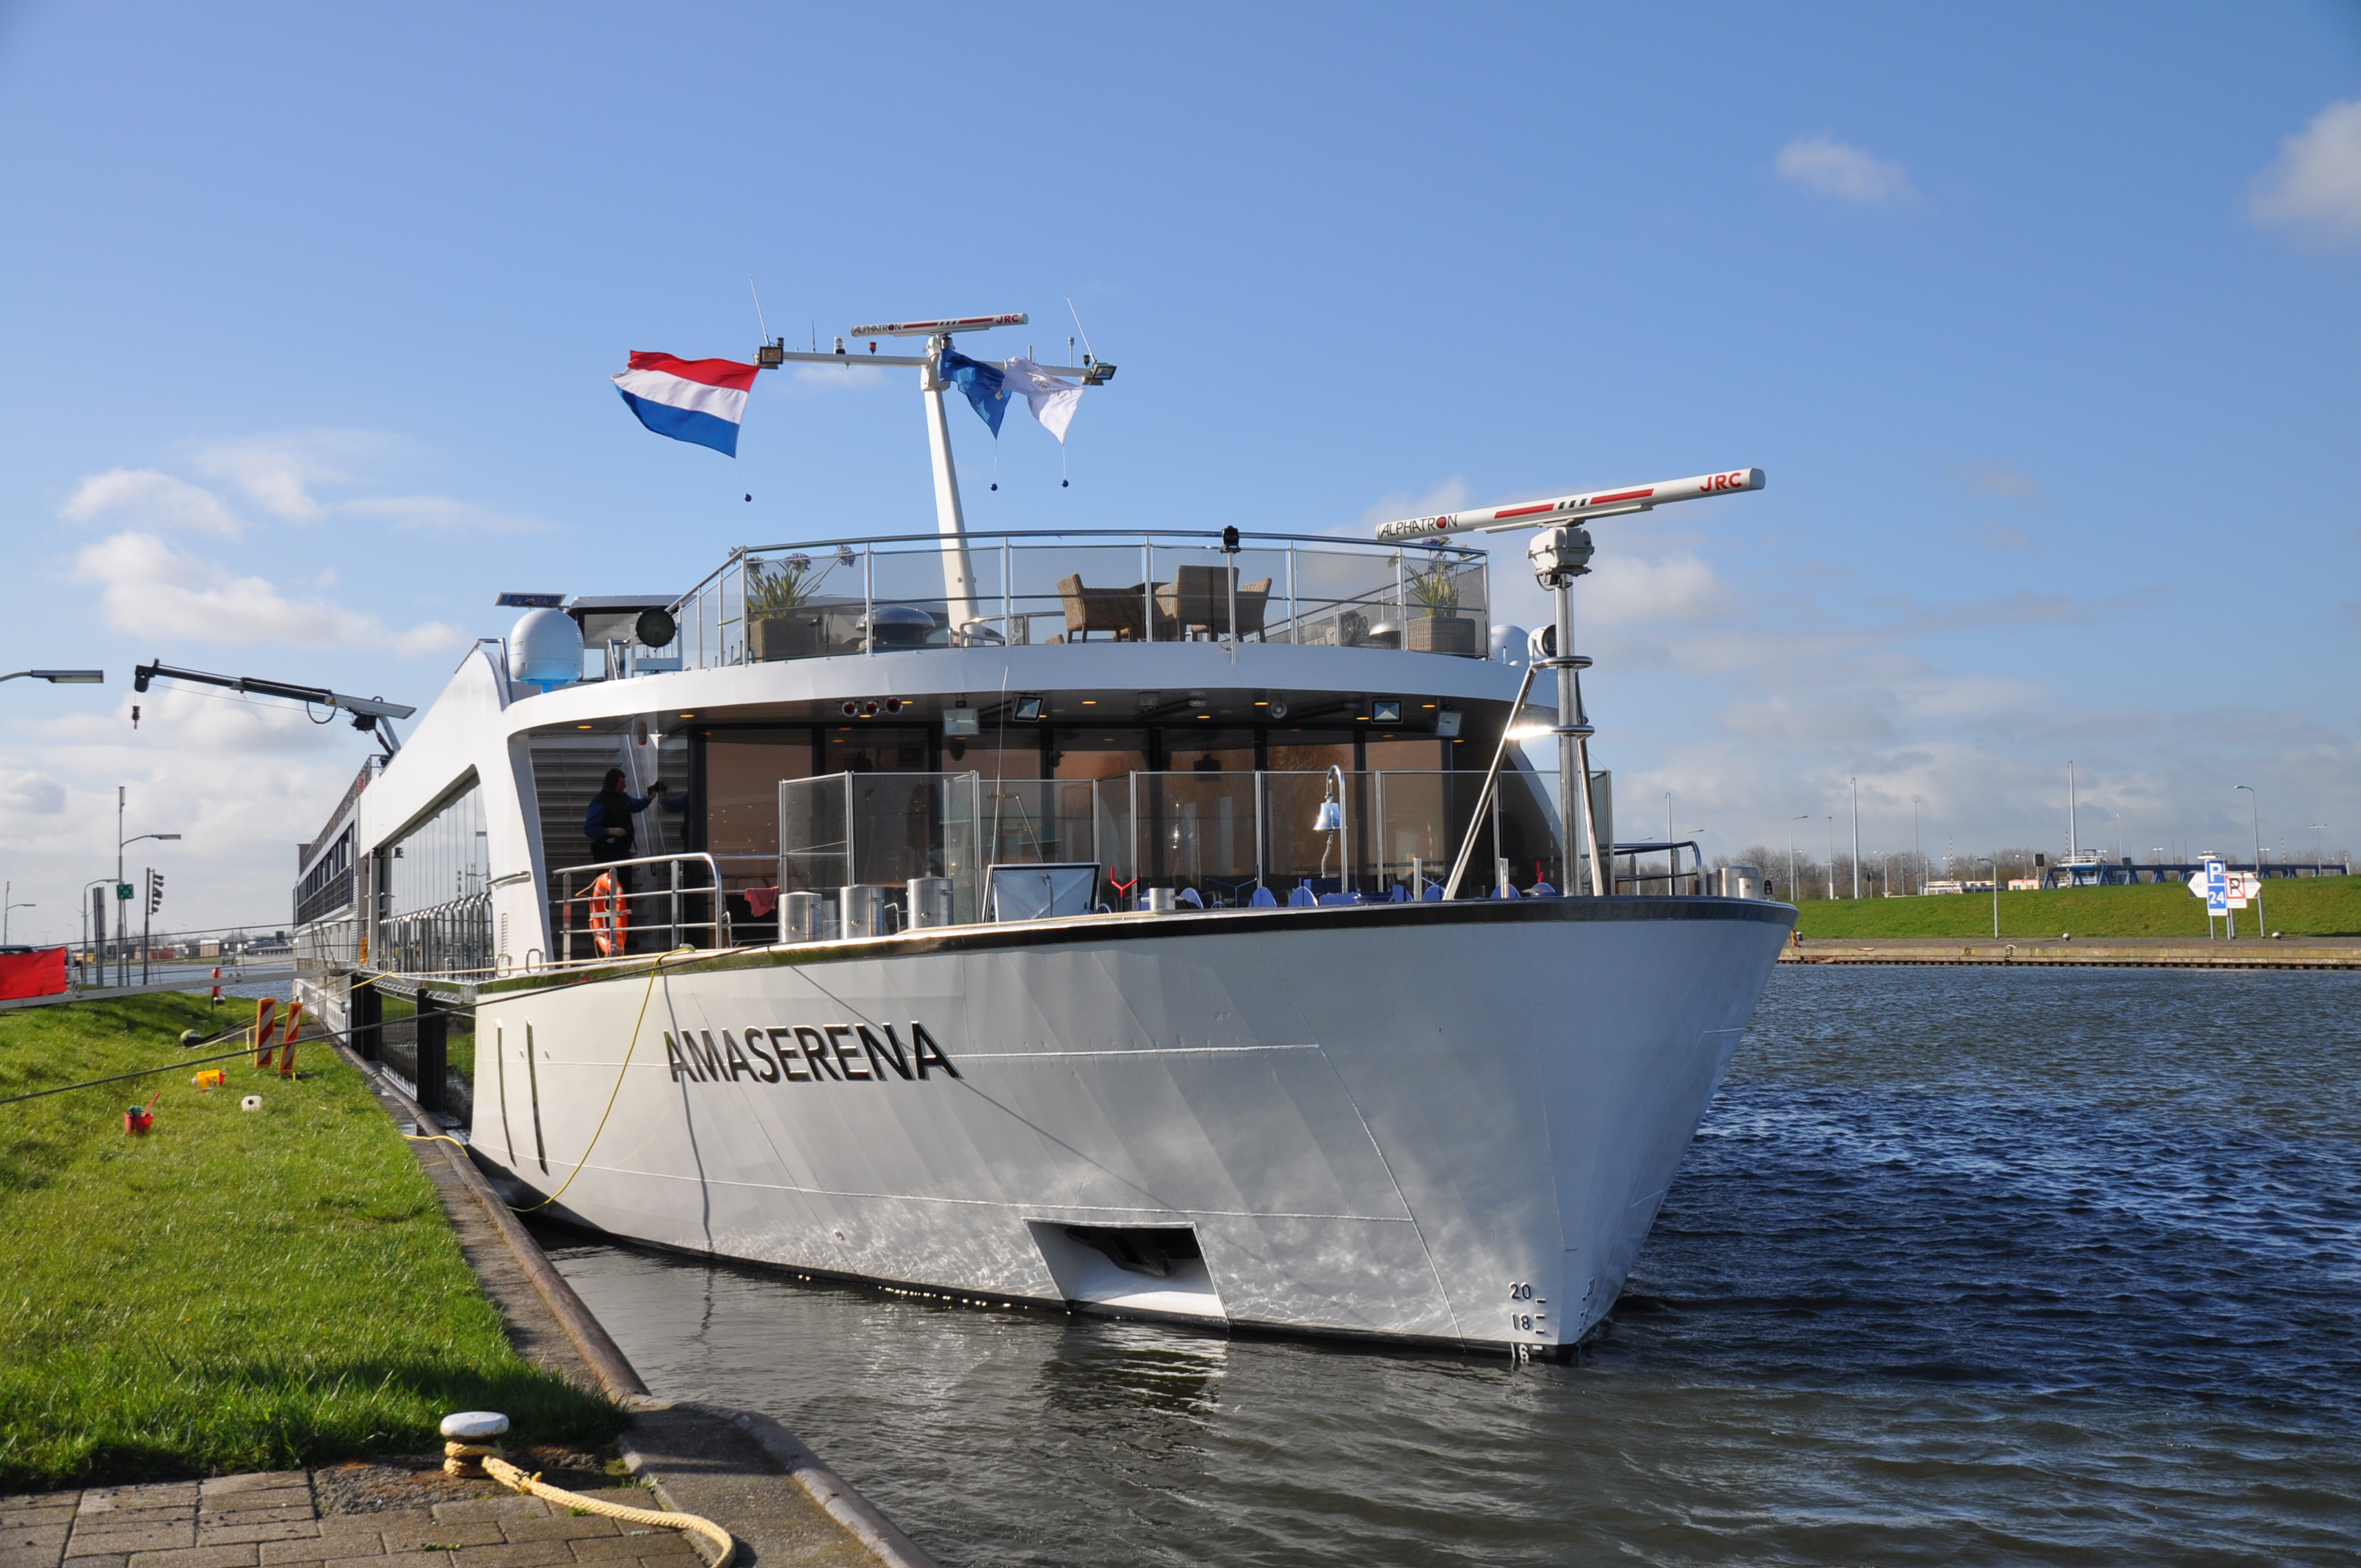 River Cruising on … AmaSerena